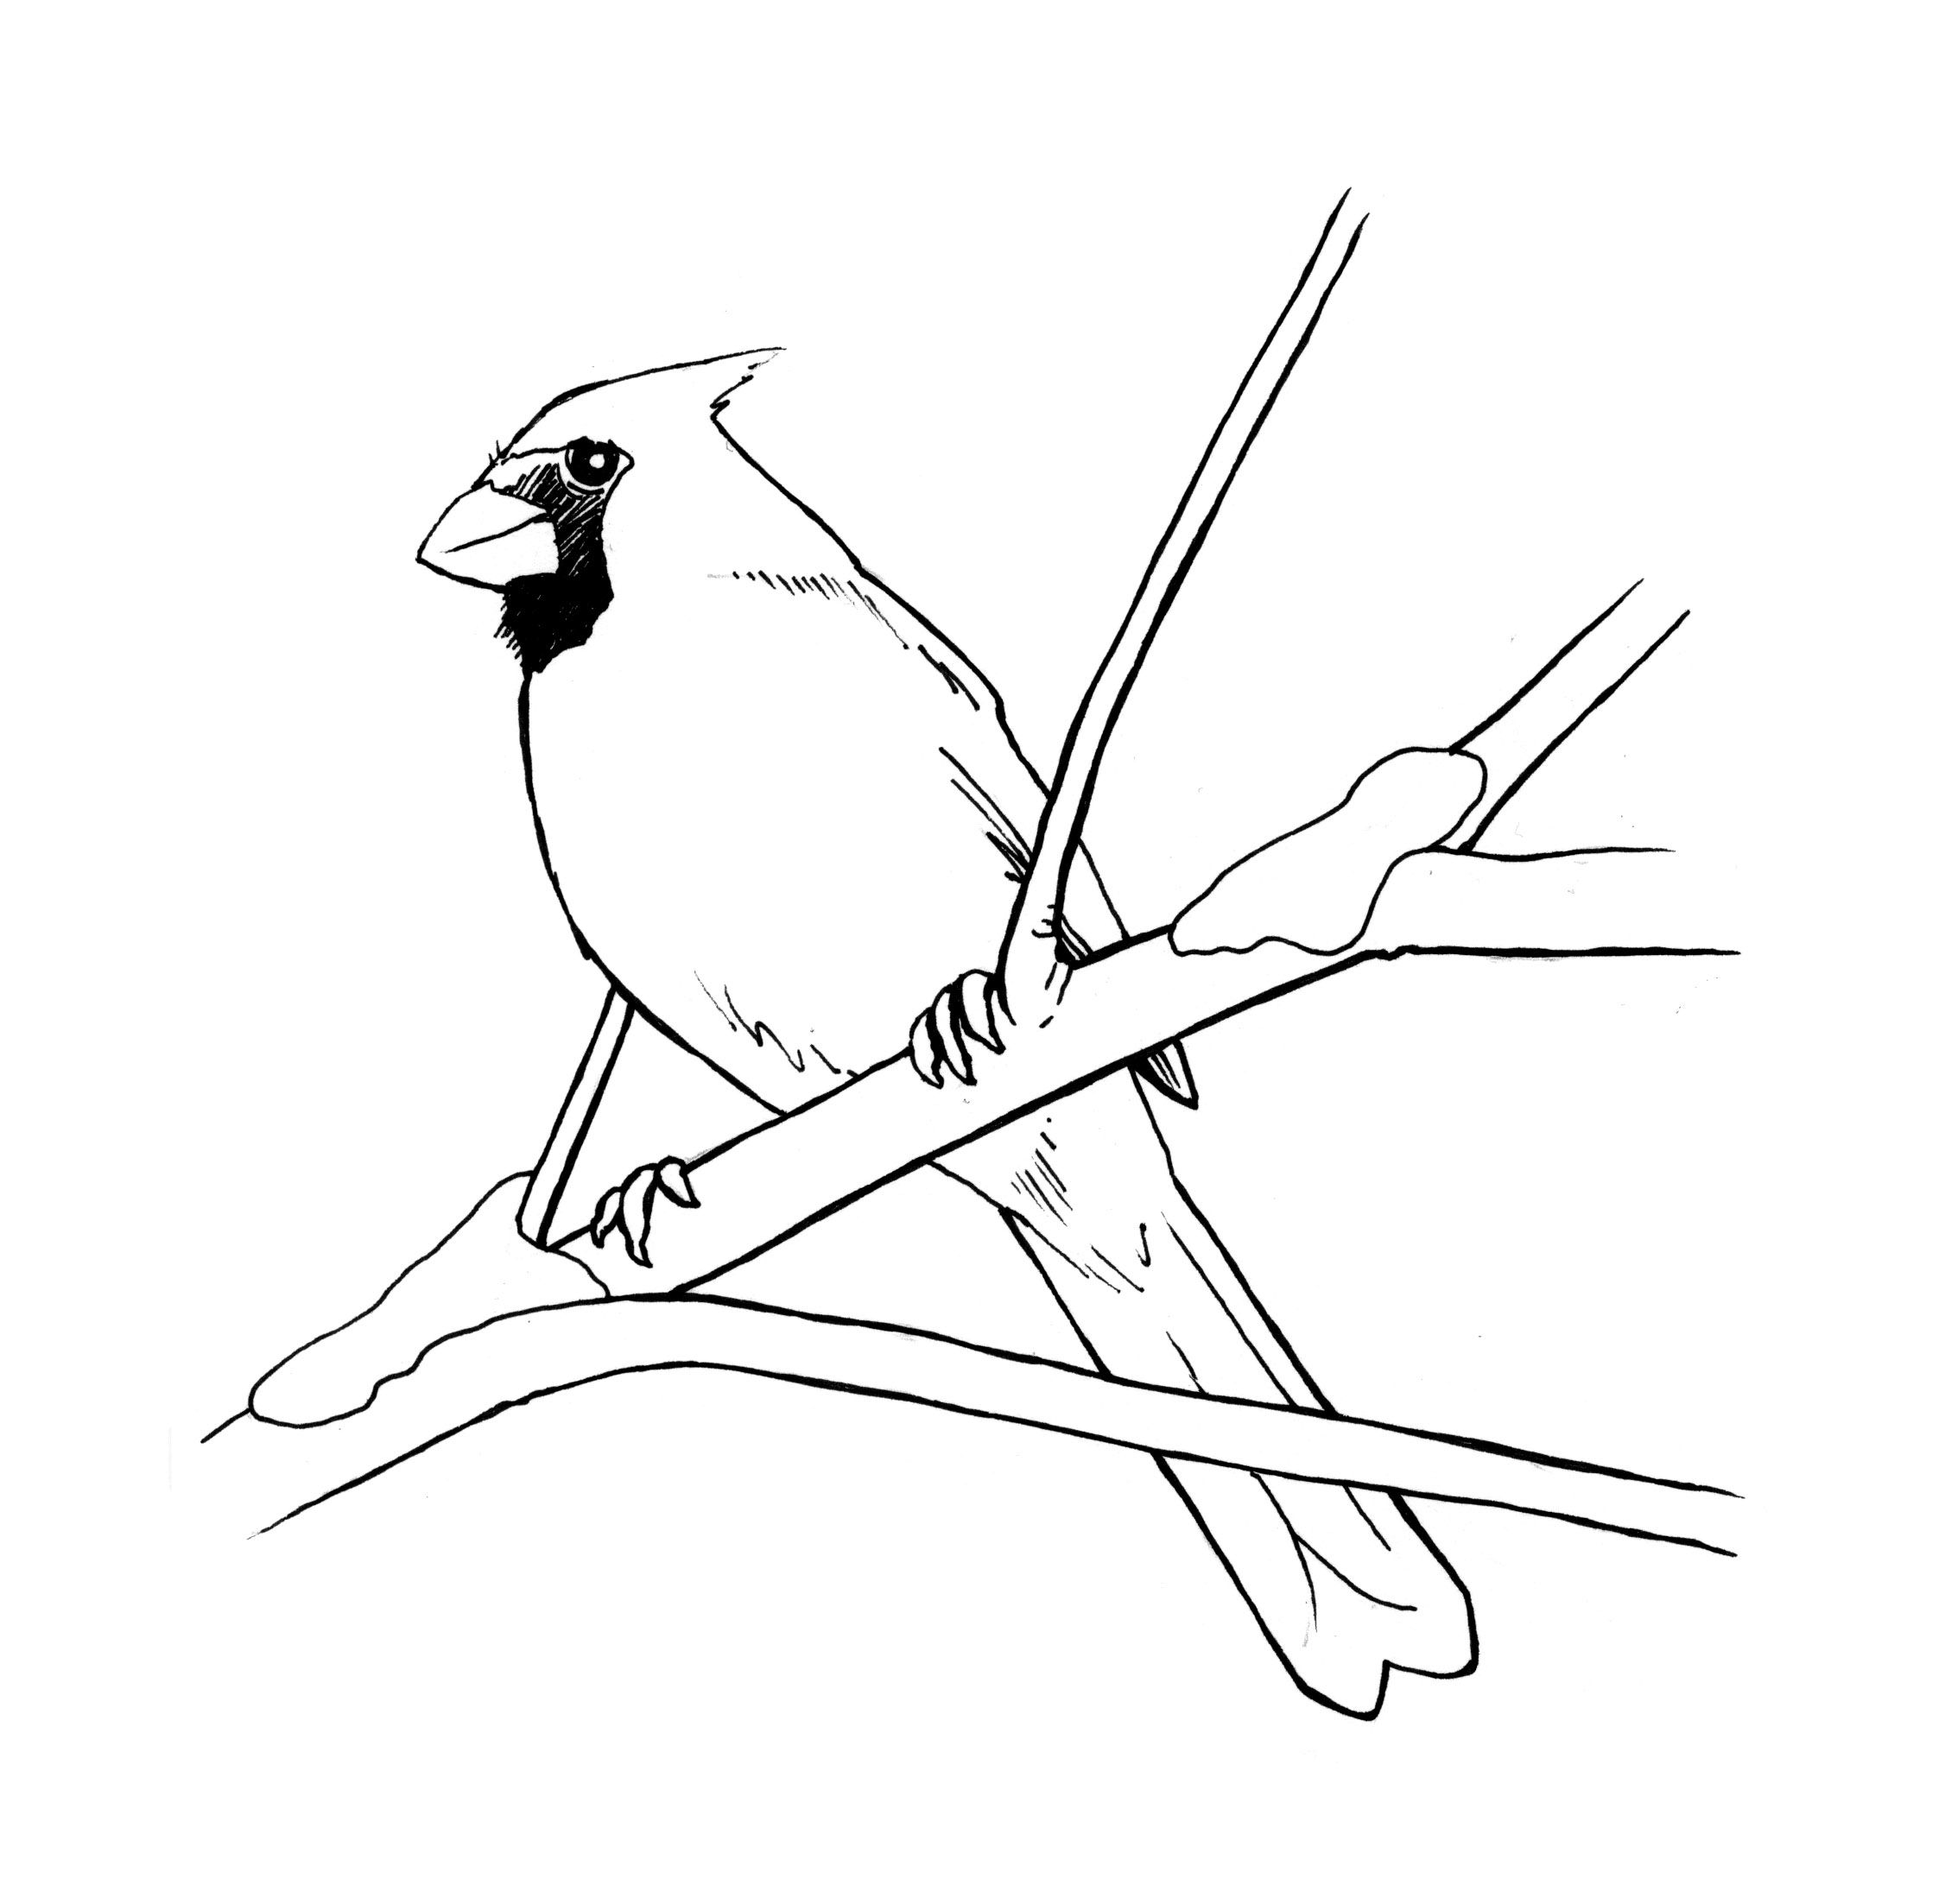 Rustic Christmas Cards And Freebies Bird Coloring Pages Silhouette Clip Art Cardinal Tattoos